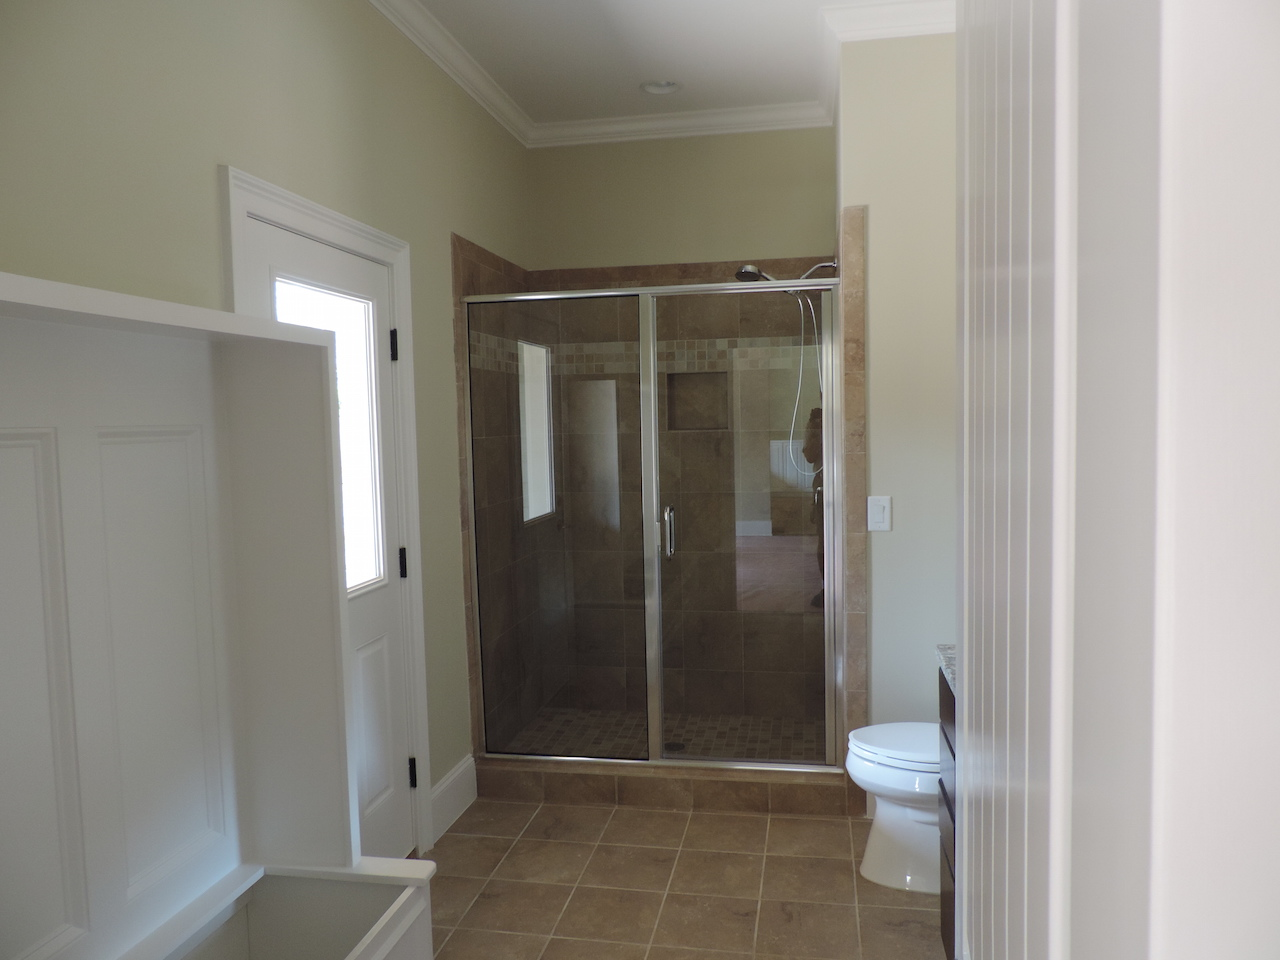 Semi-Frameless Shower Example47